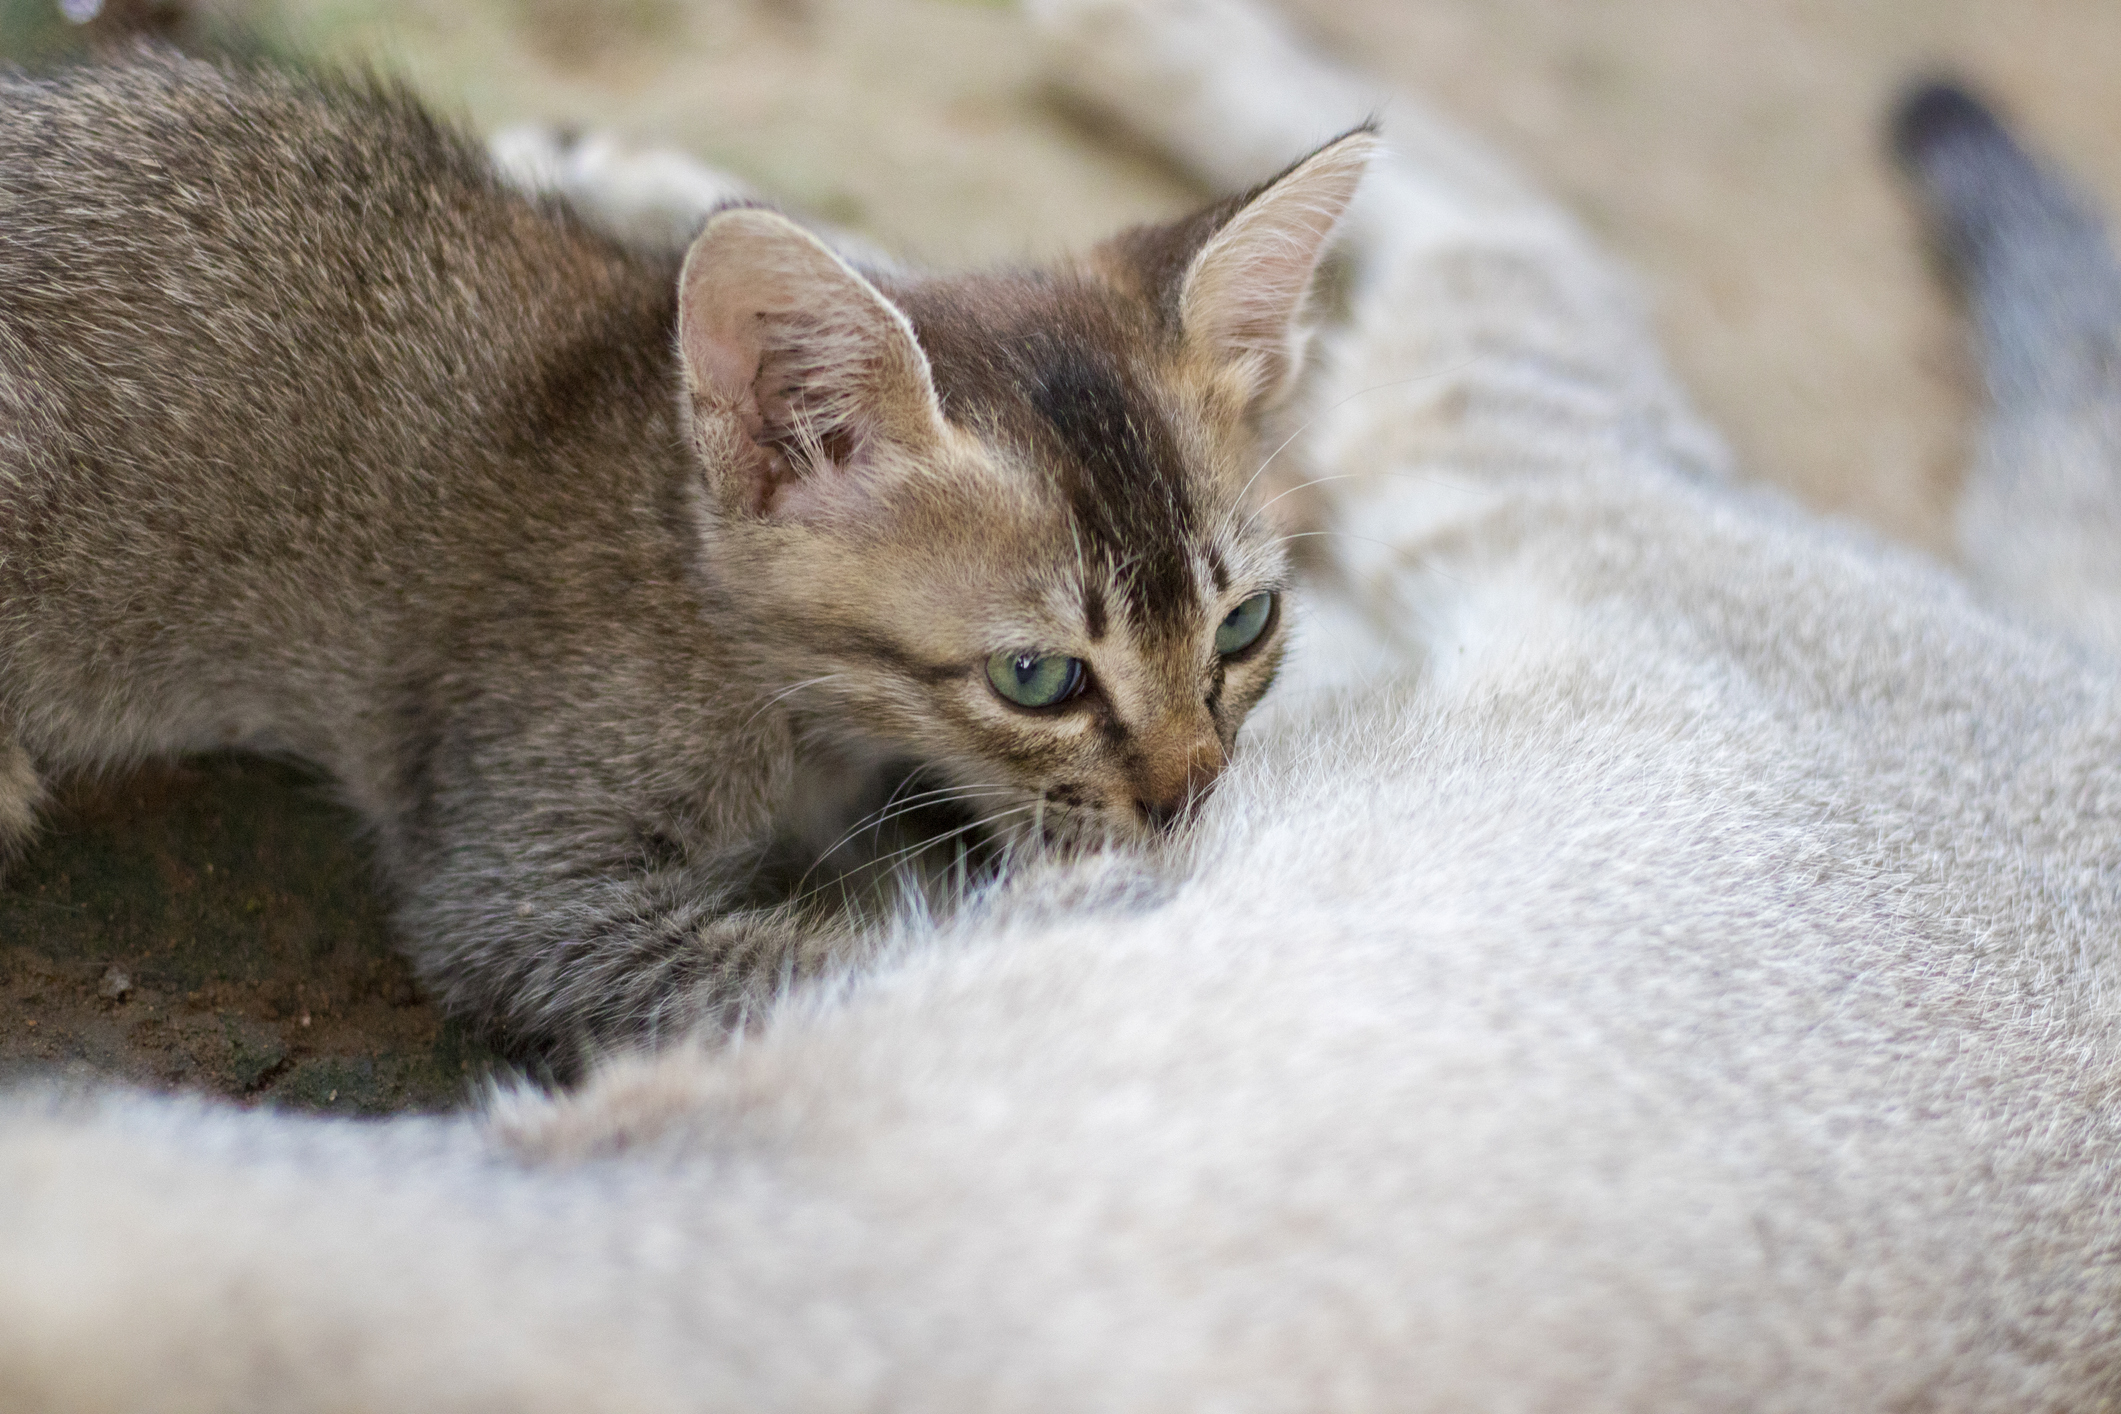 A cute brown kitten suckles from its mother